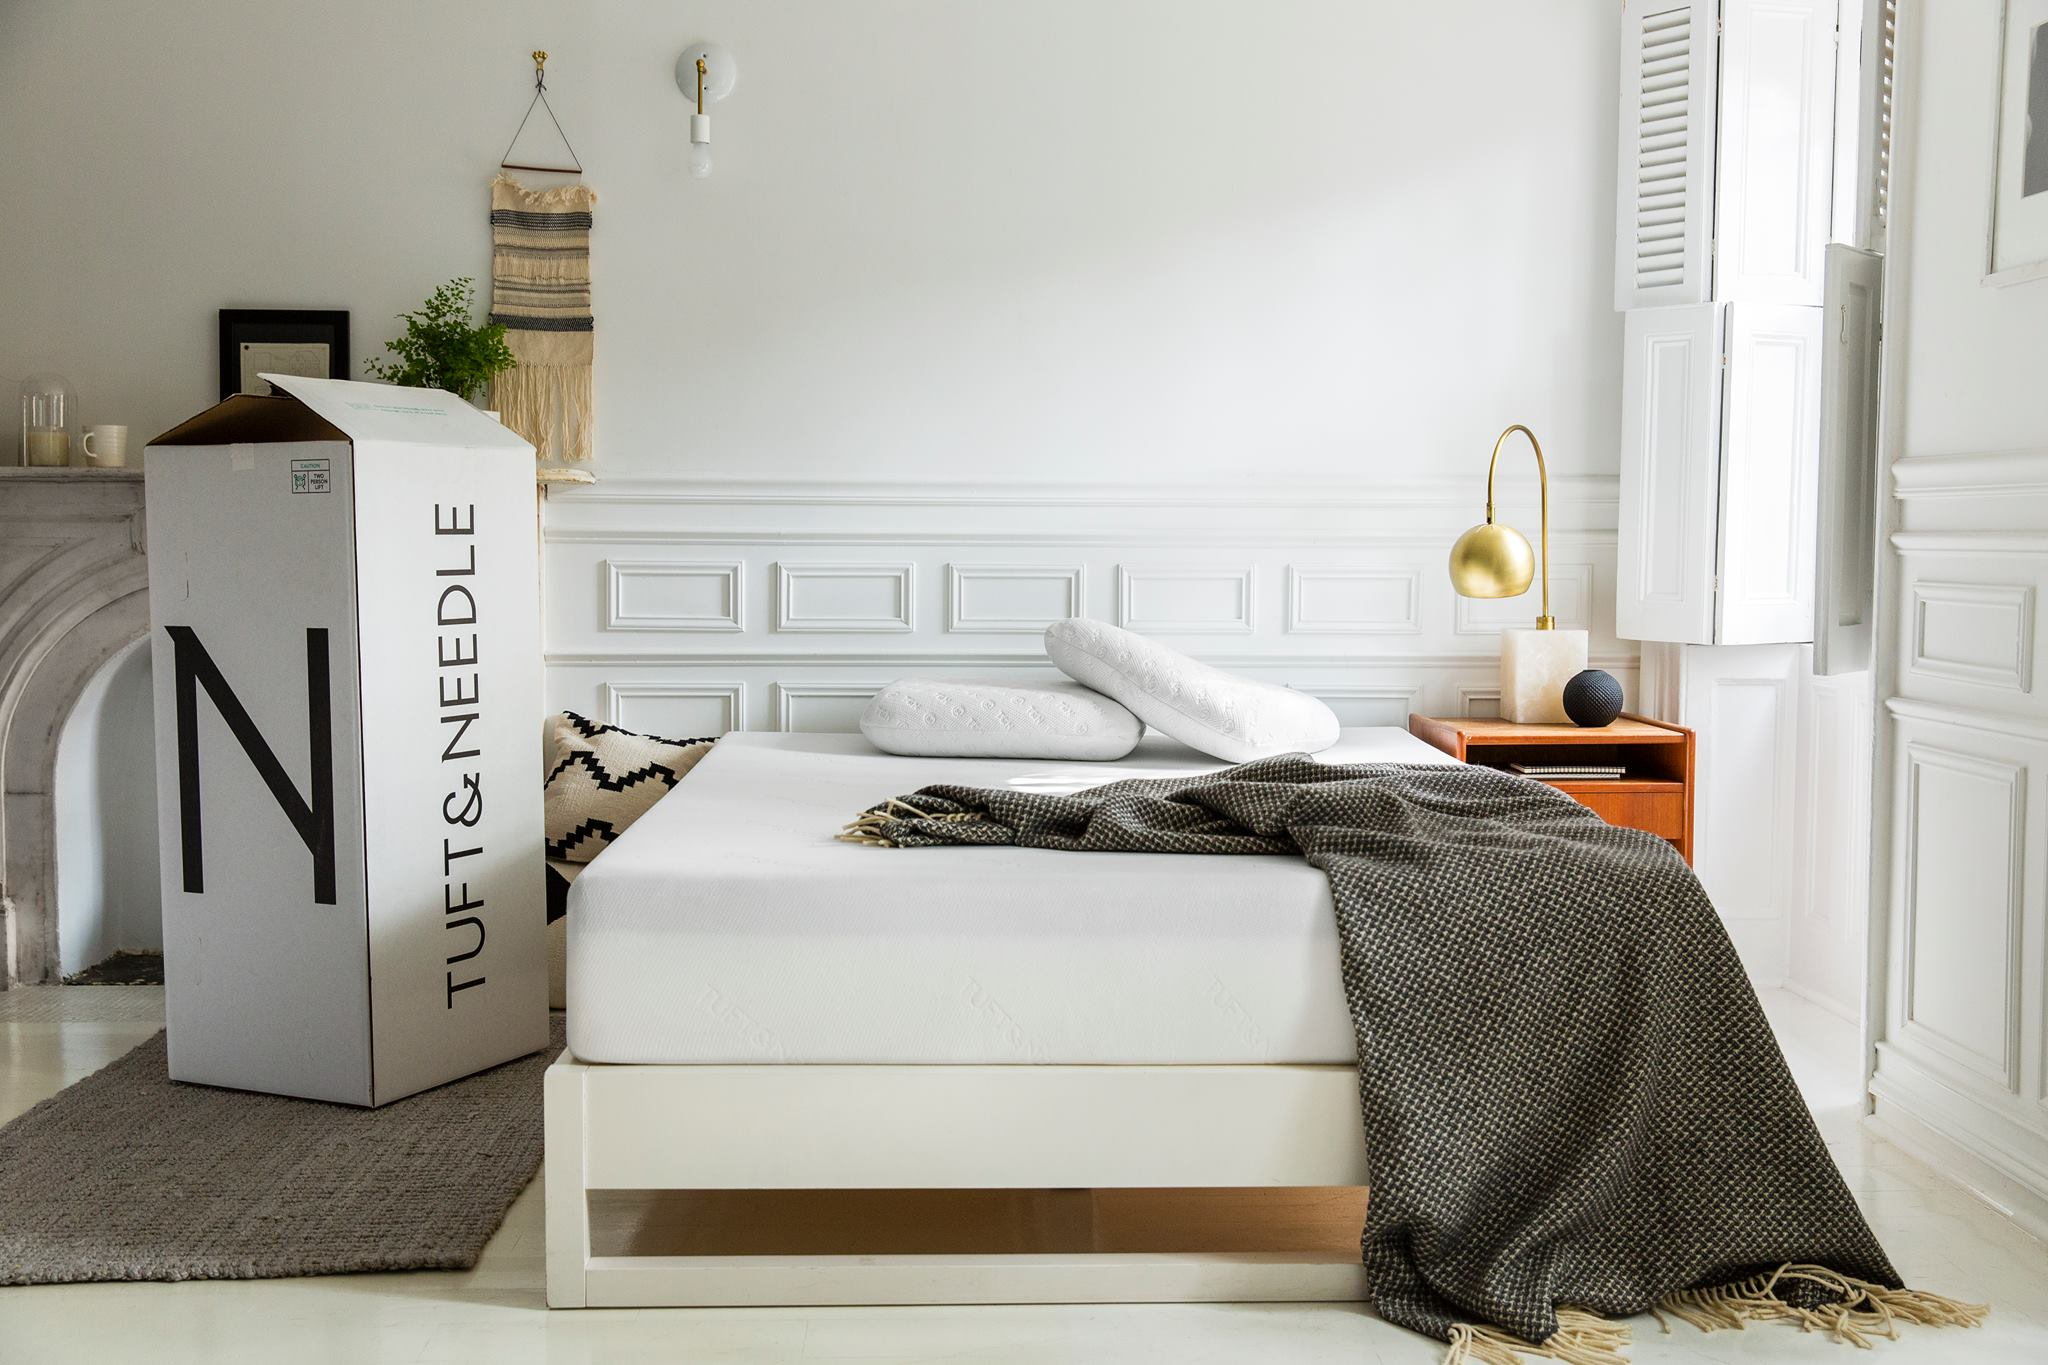 Best Mattress Amazon Best Mattresses On Amazon Mattresshelp Org